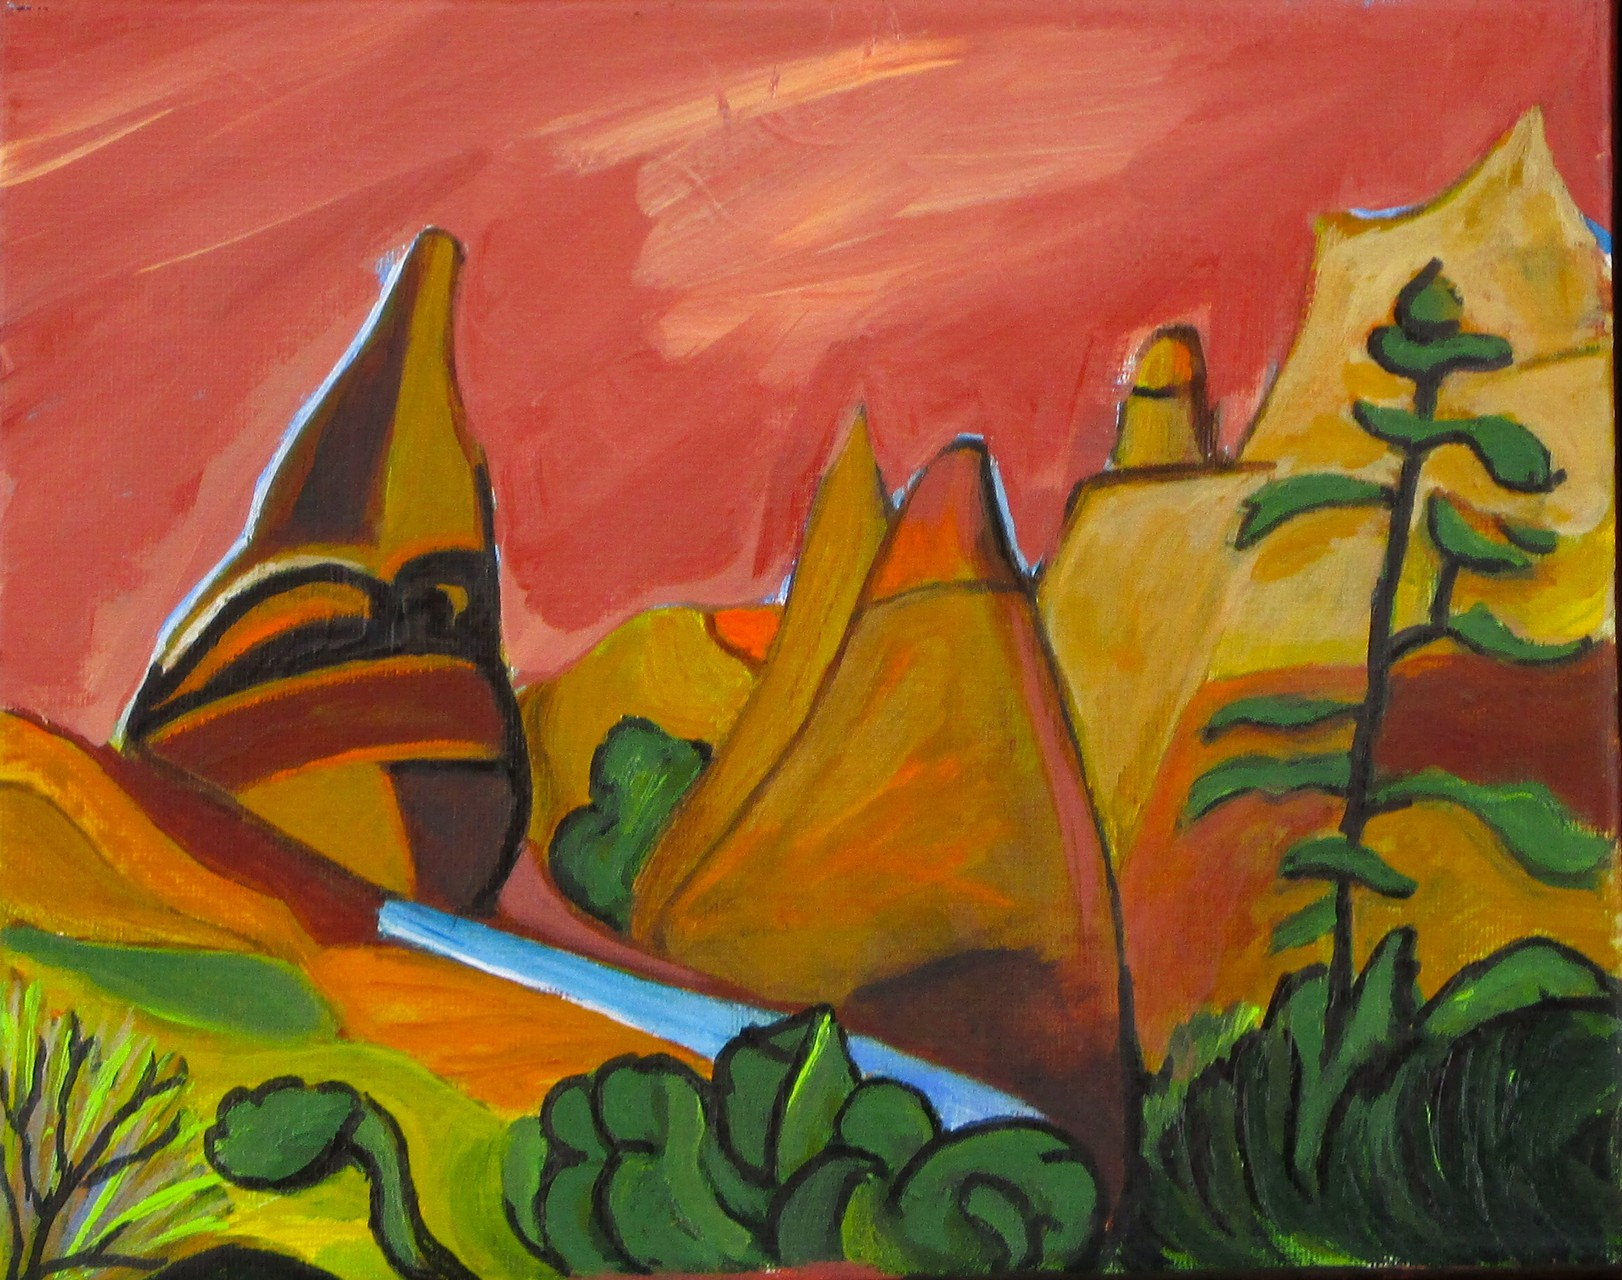 Tent Rocks, oil on canvas, 12 x 9, 2014